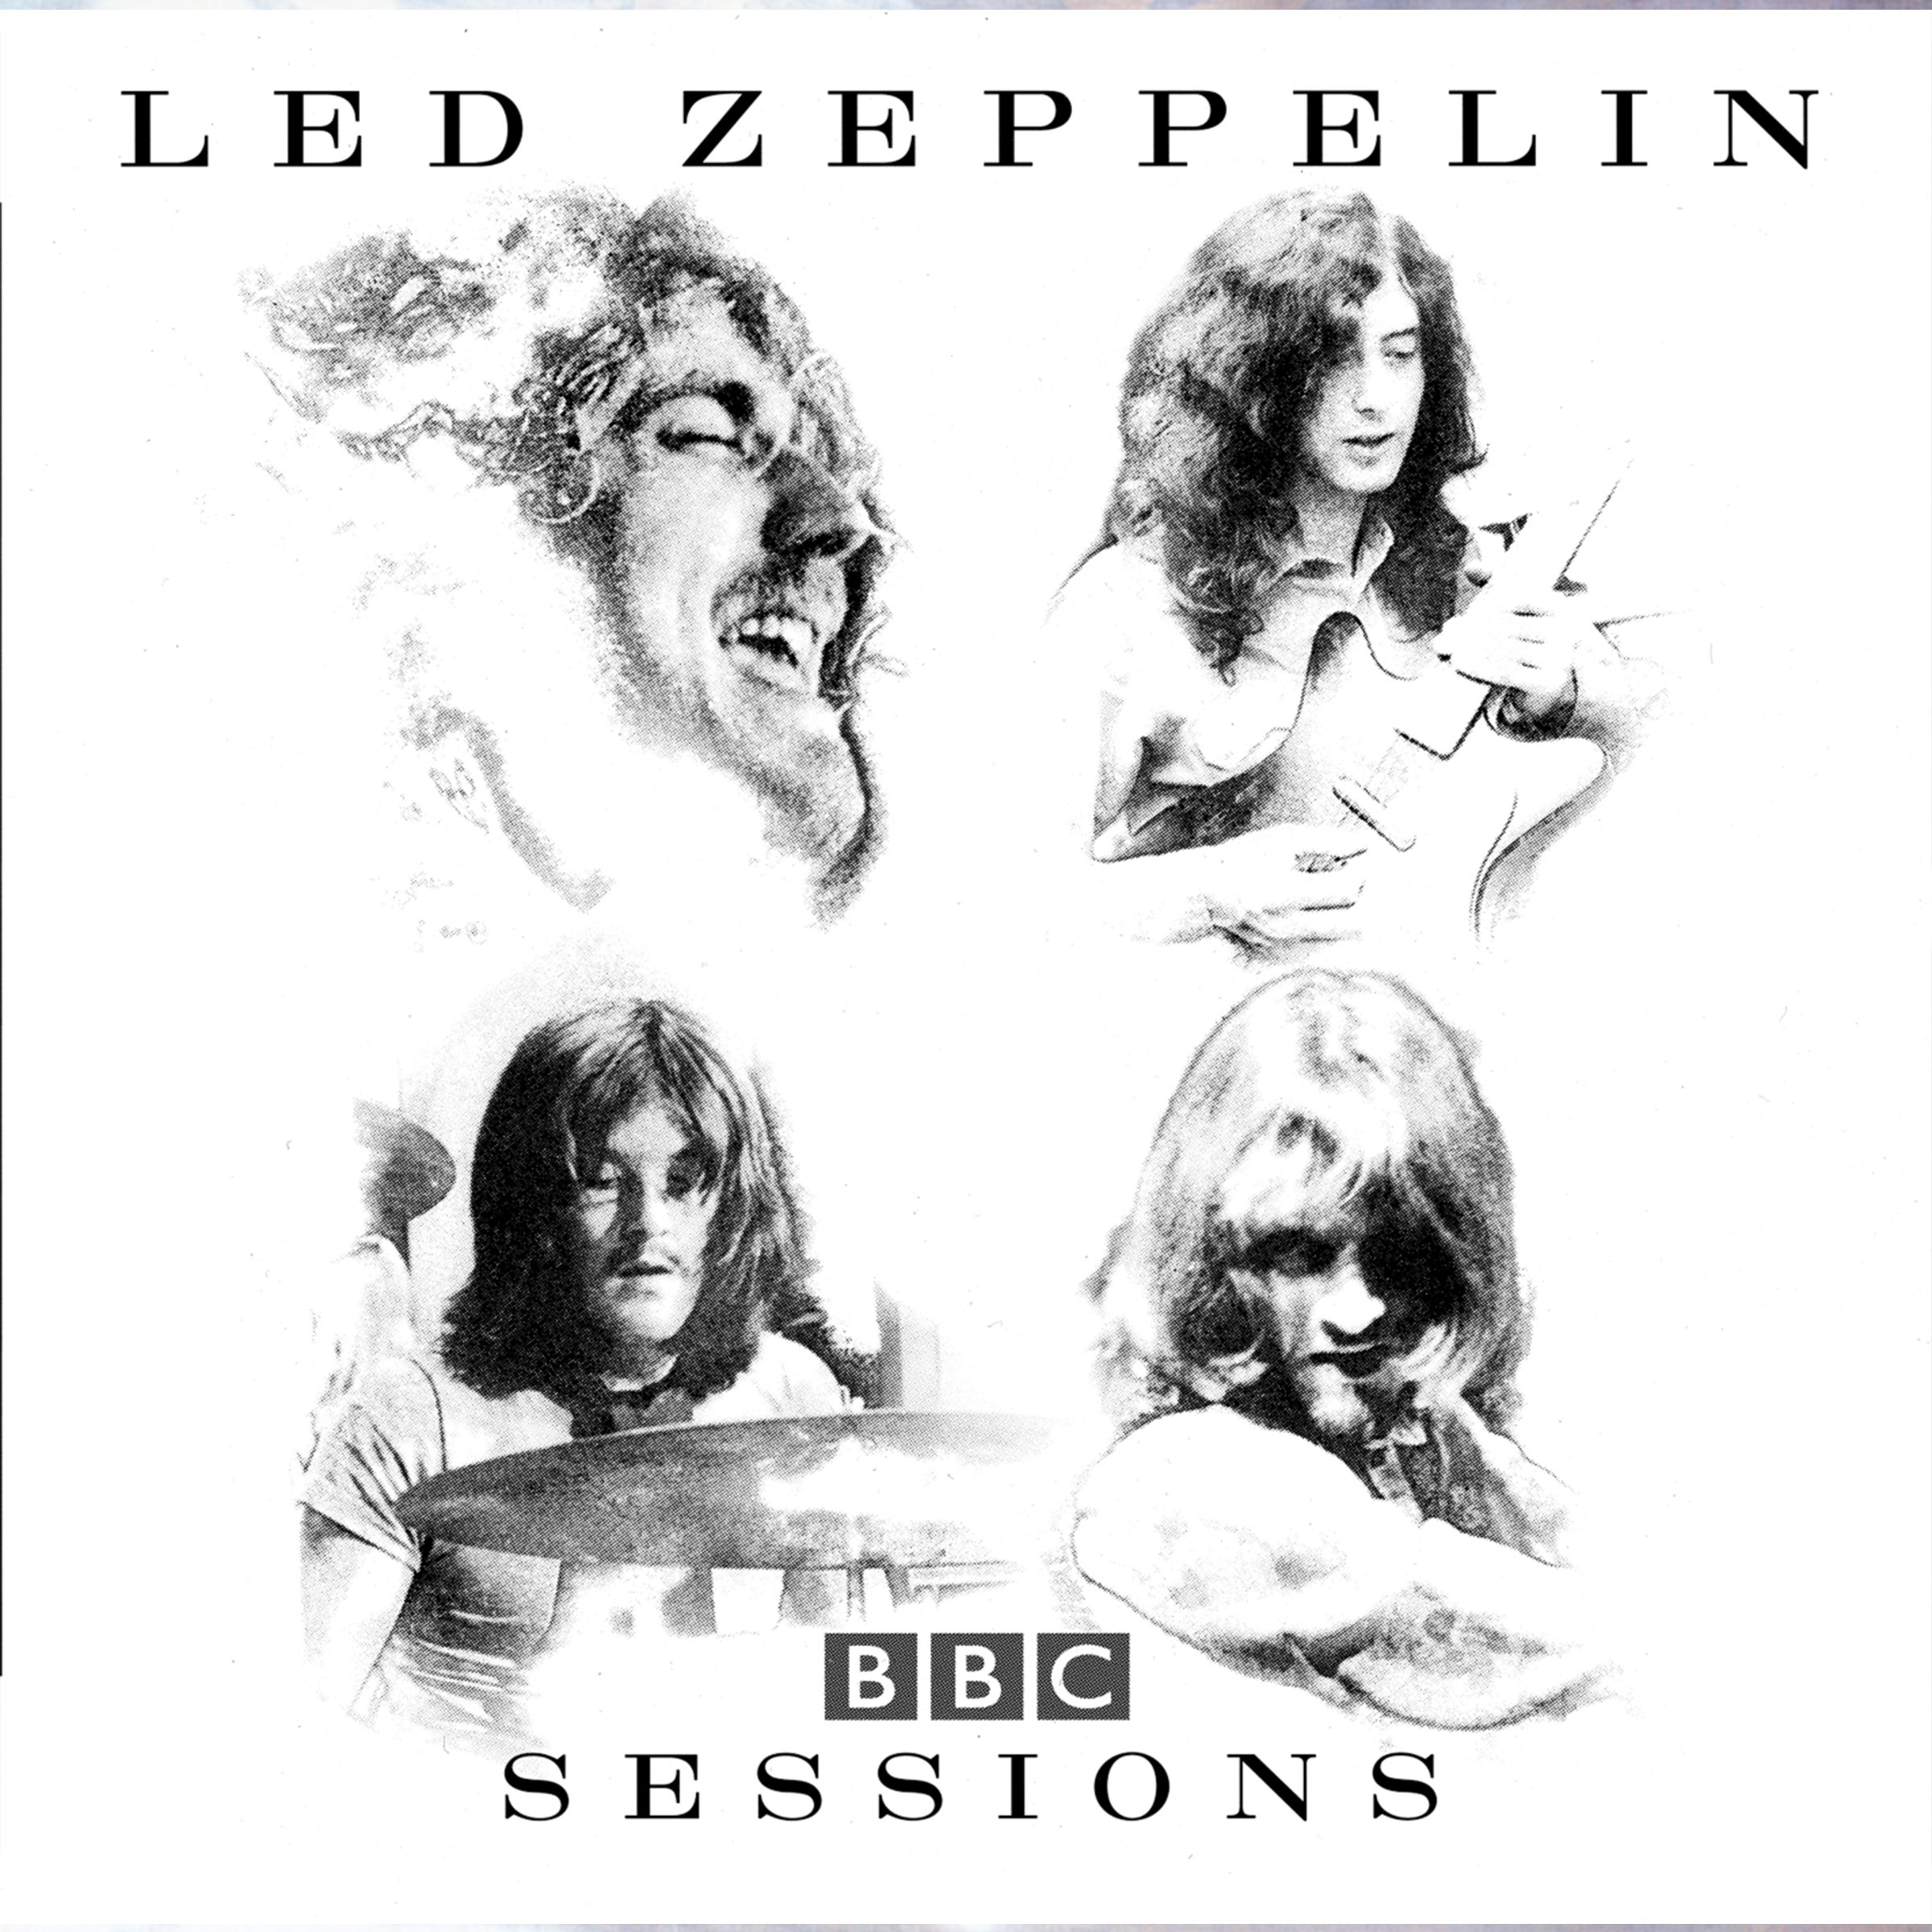 BBC Sessions by Led Zeppelin